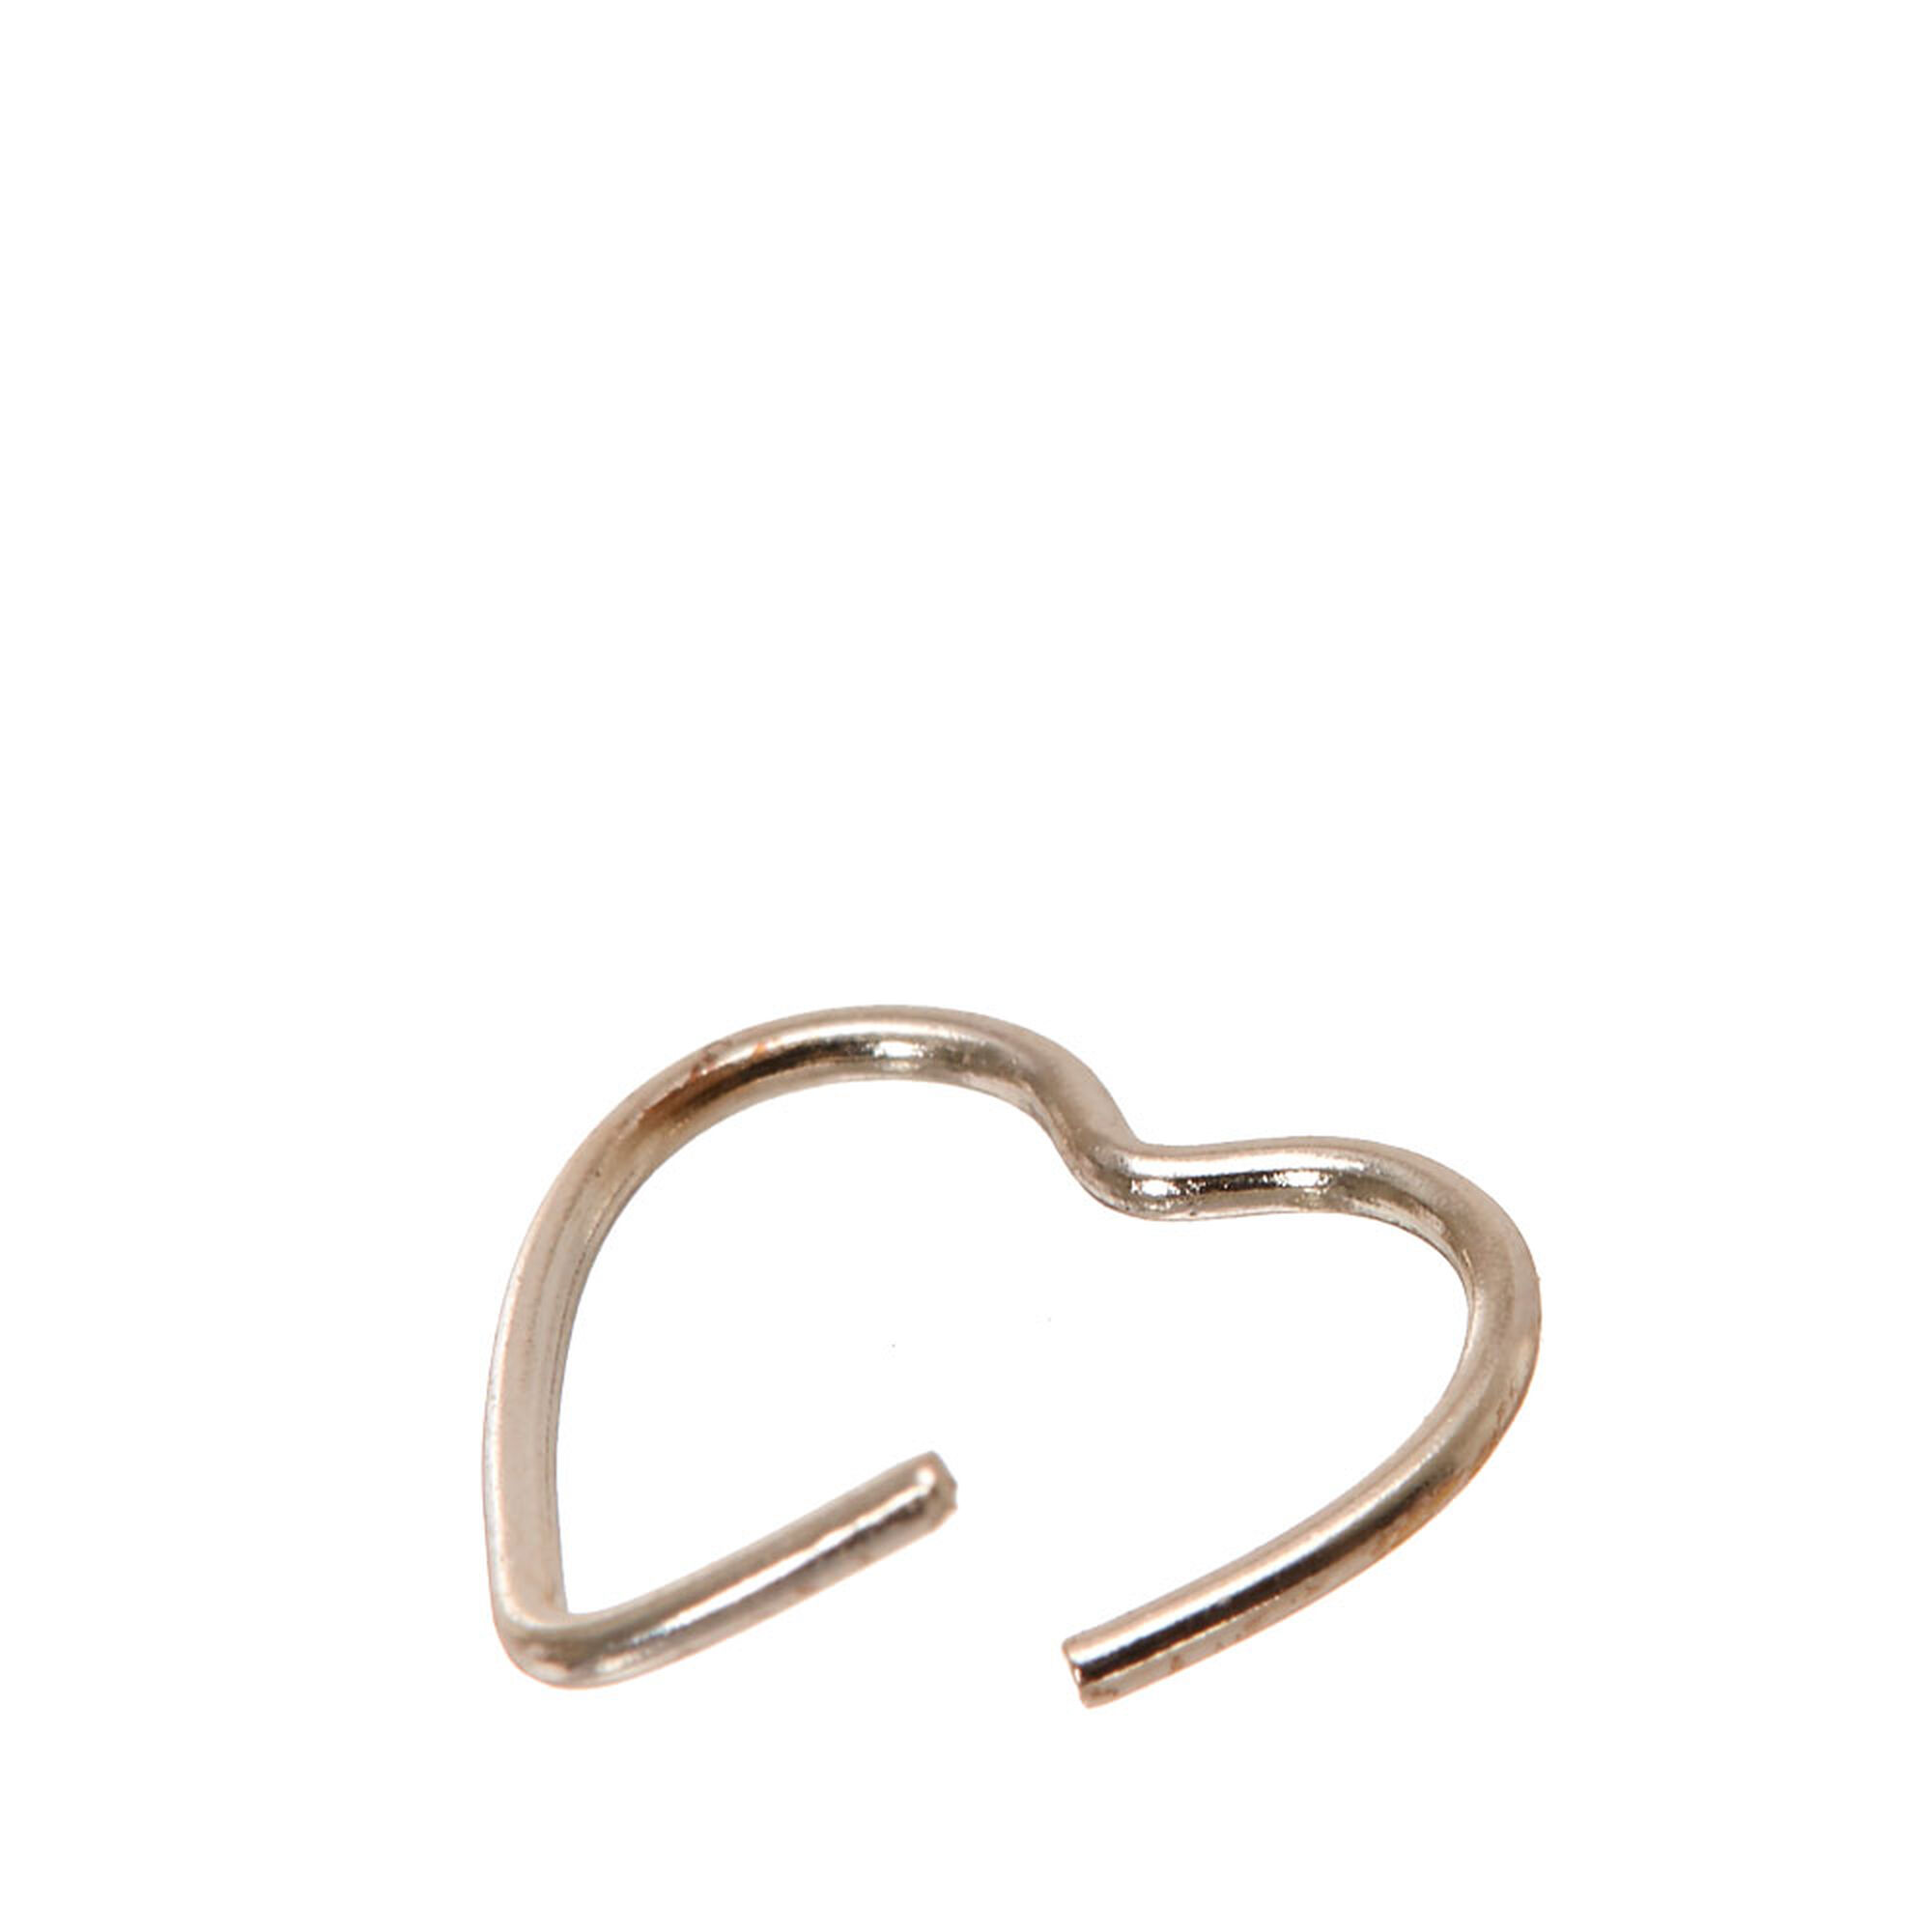 Sterling Silver Heart Hoop Earrings Heart Shaped Hoops 14k